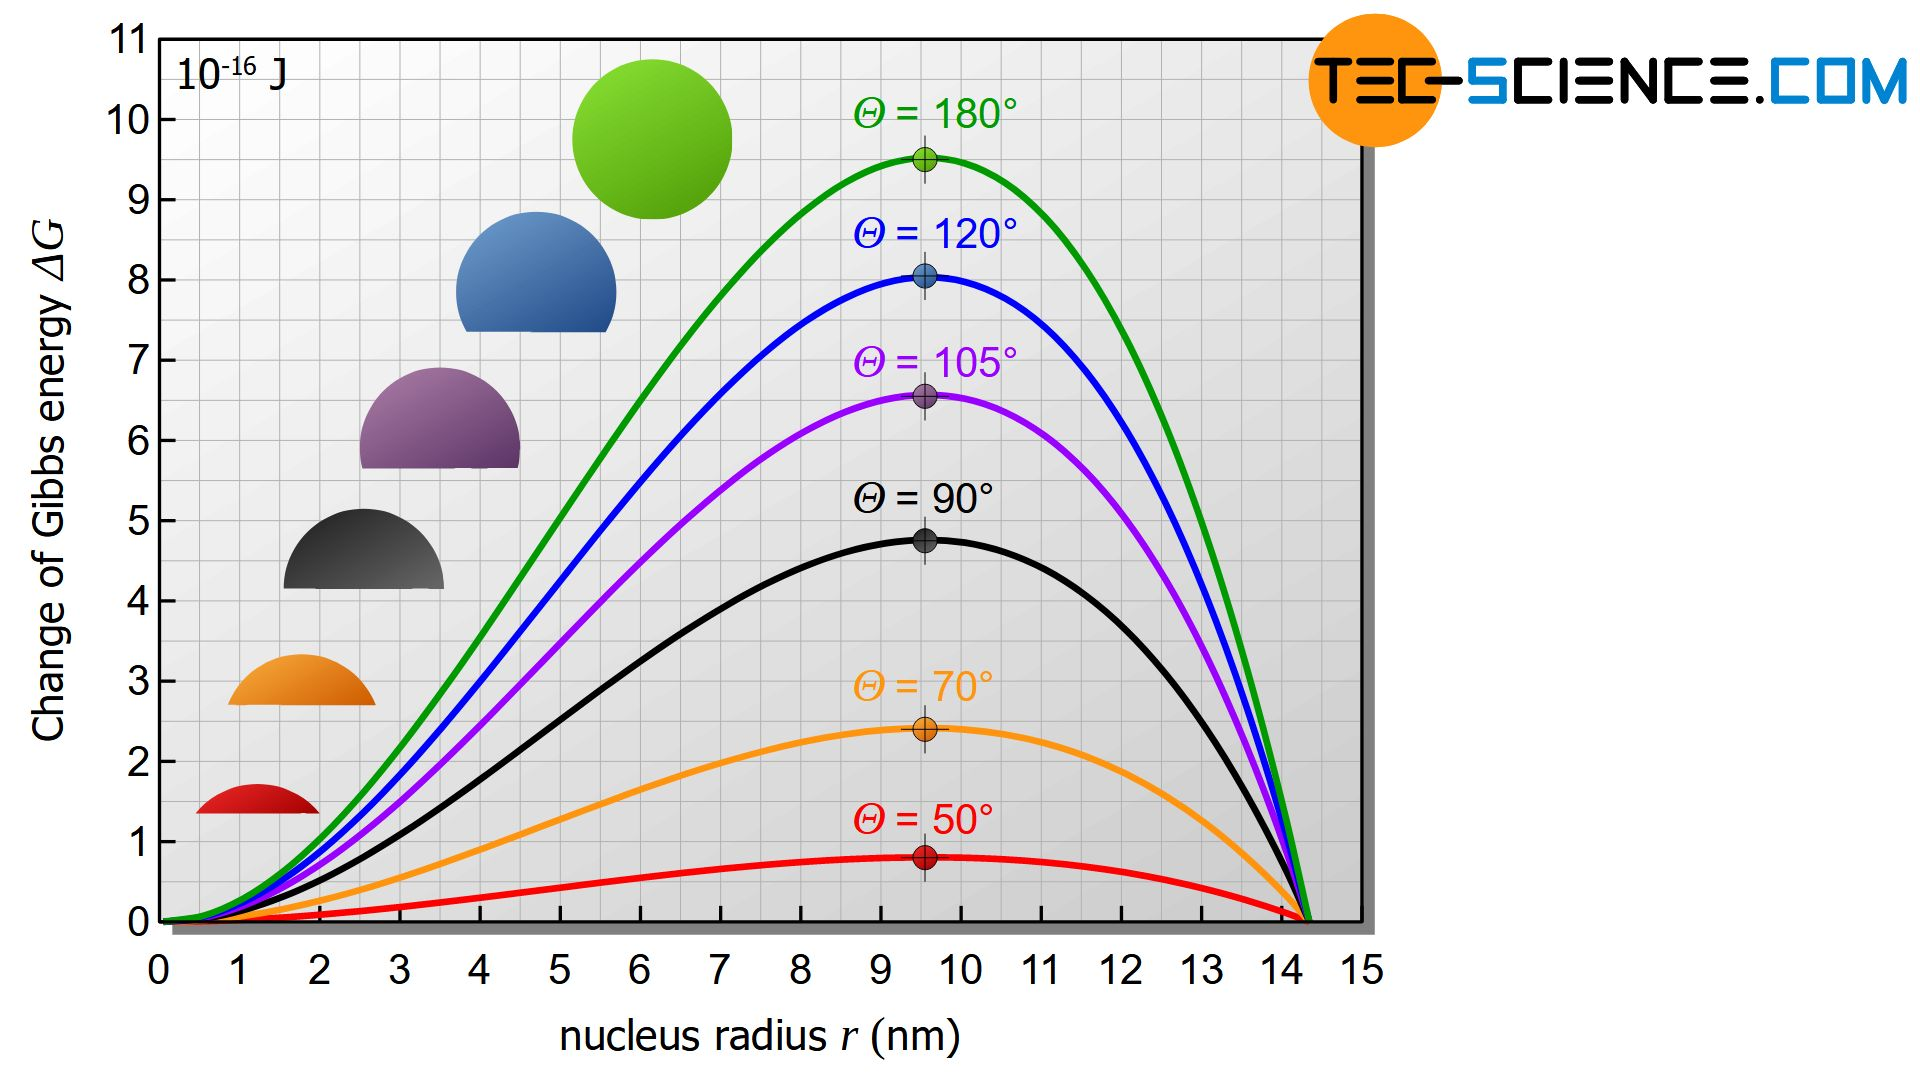 Activation energy for nucleation and critical nucleus radius for different contact angles